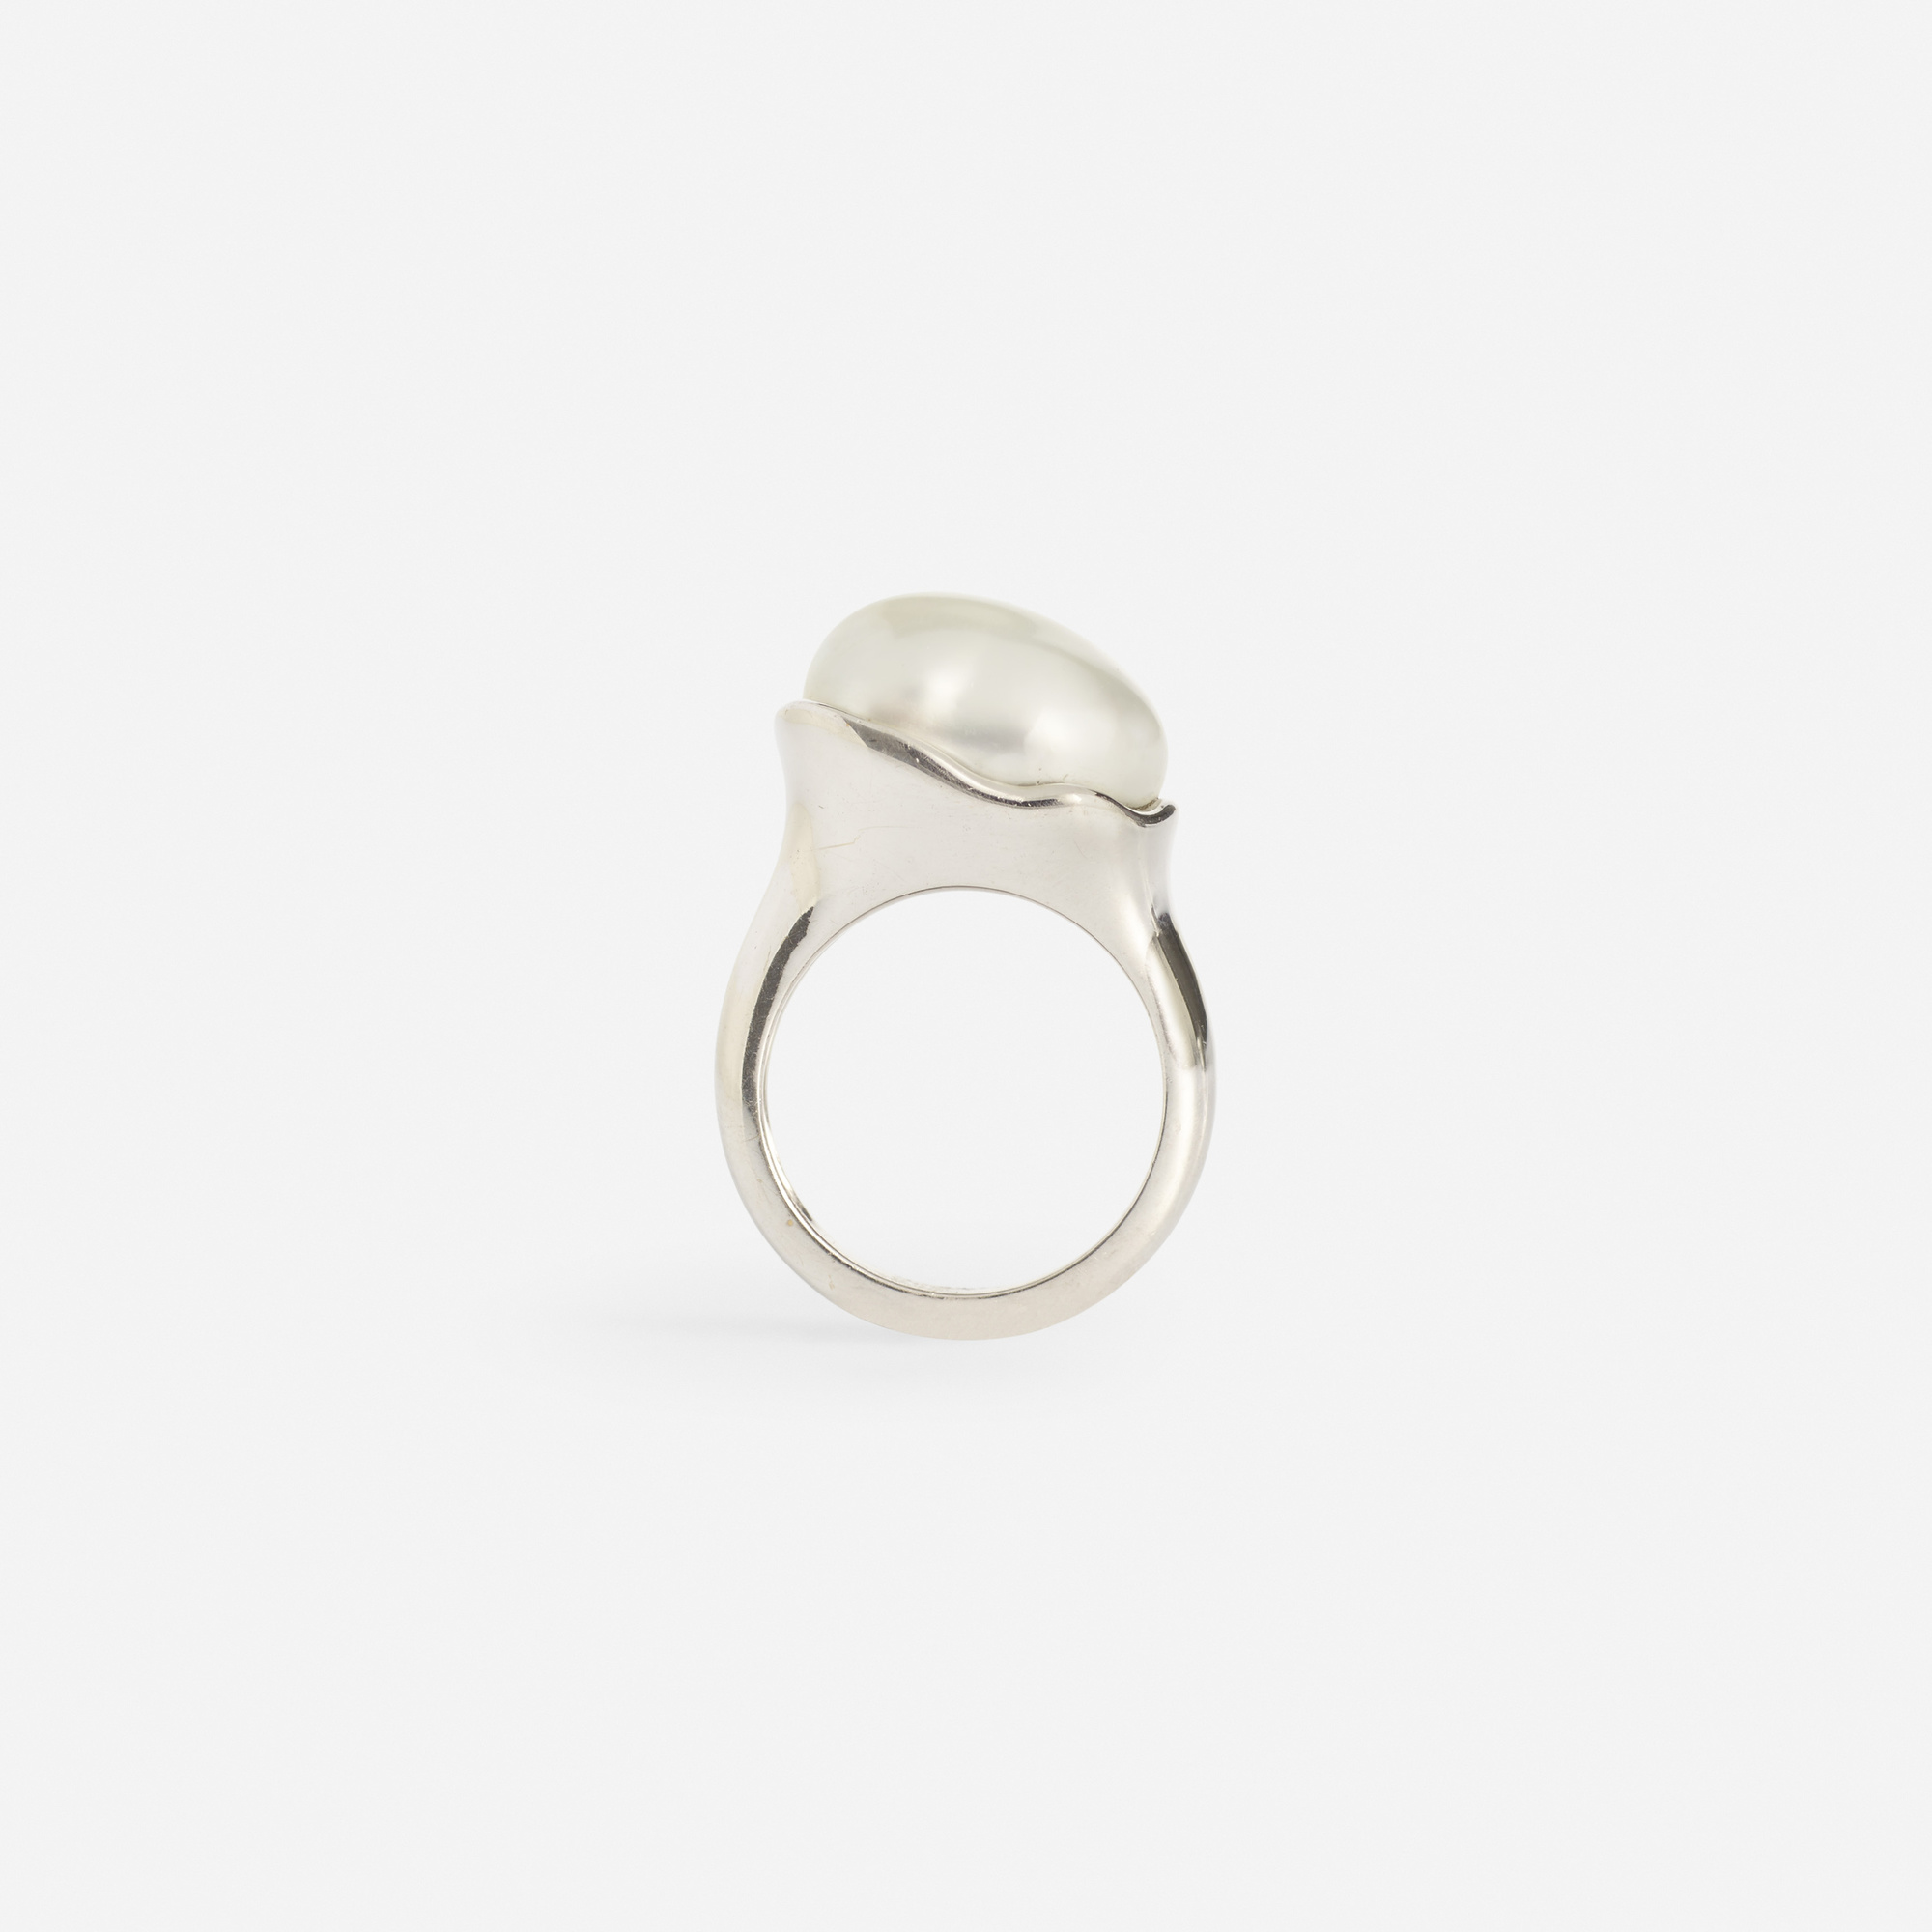 227: Elsa Peretti for Tiffany & Co. / A gold and Keshi pearl ring (1 of 2)